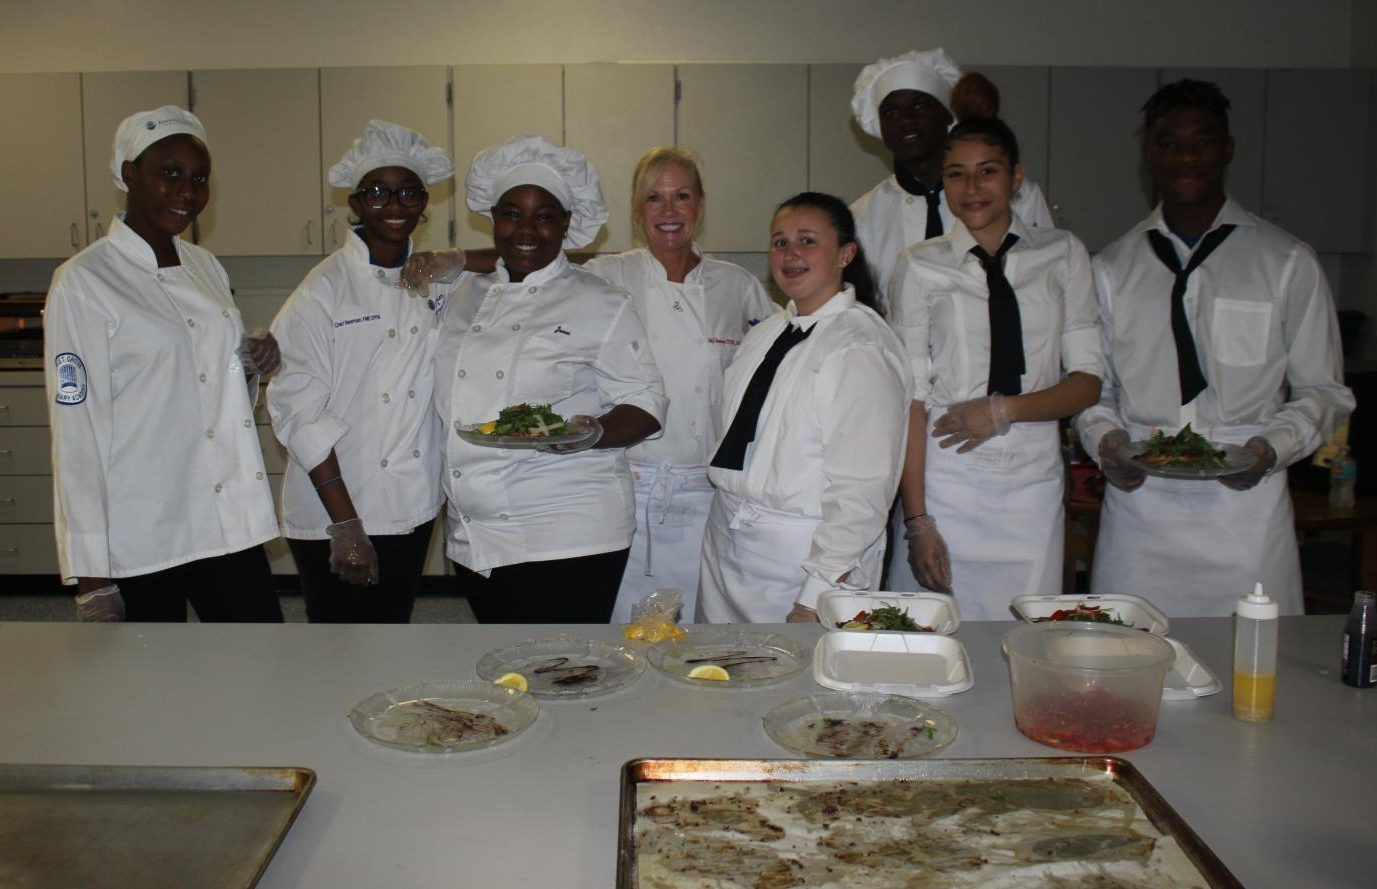 BE OUR GUEST: Chef Newman and her Culinary Academy students prepared a meal for the monthly Career Advisory Board Meeting on March 27.